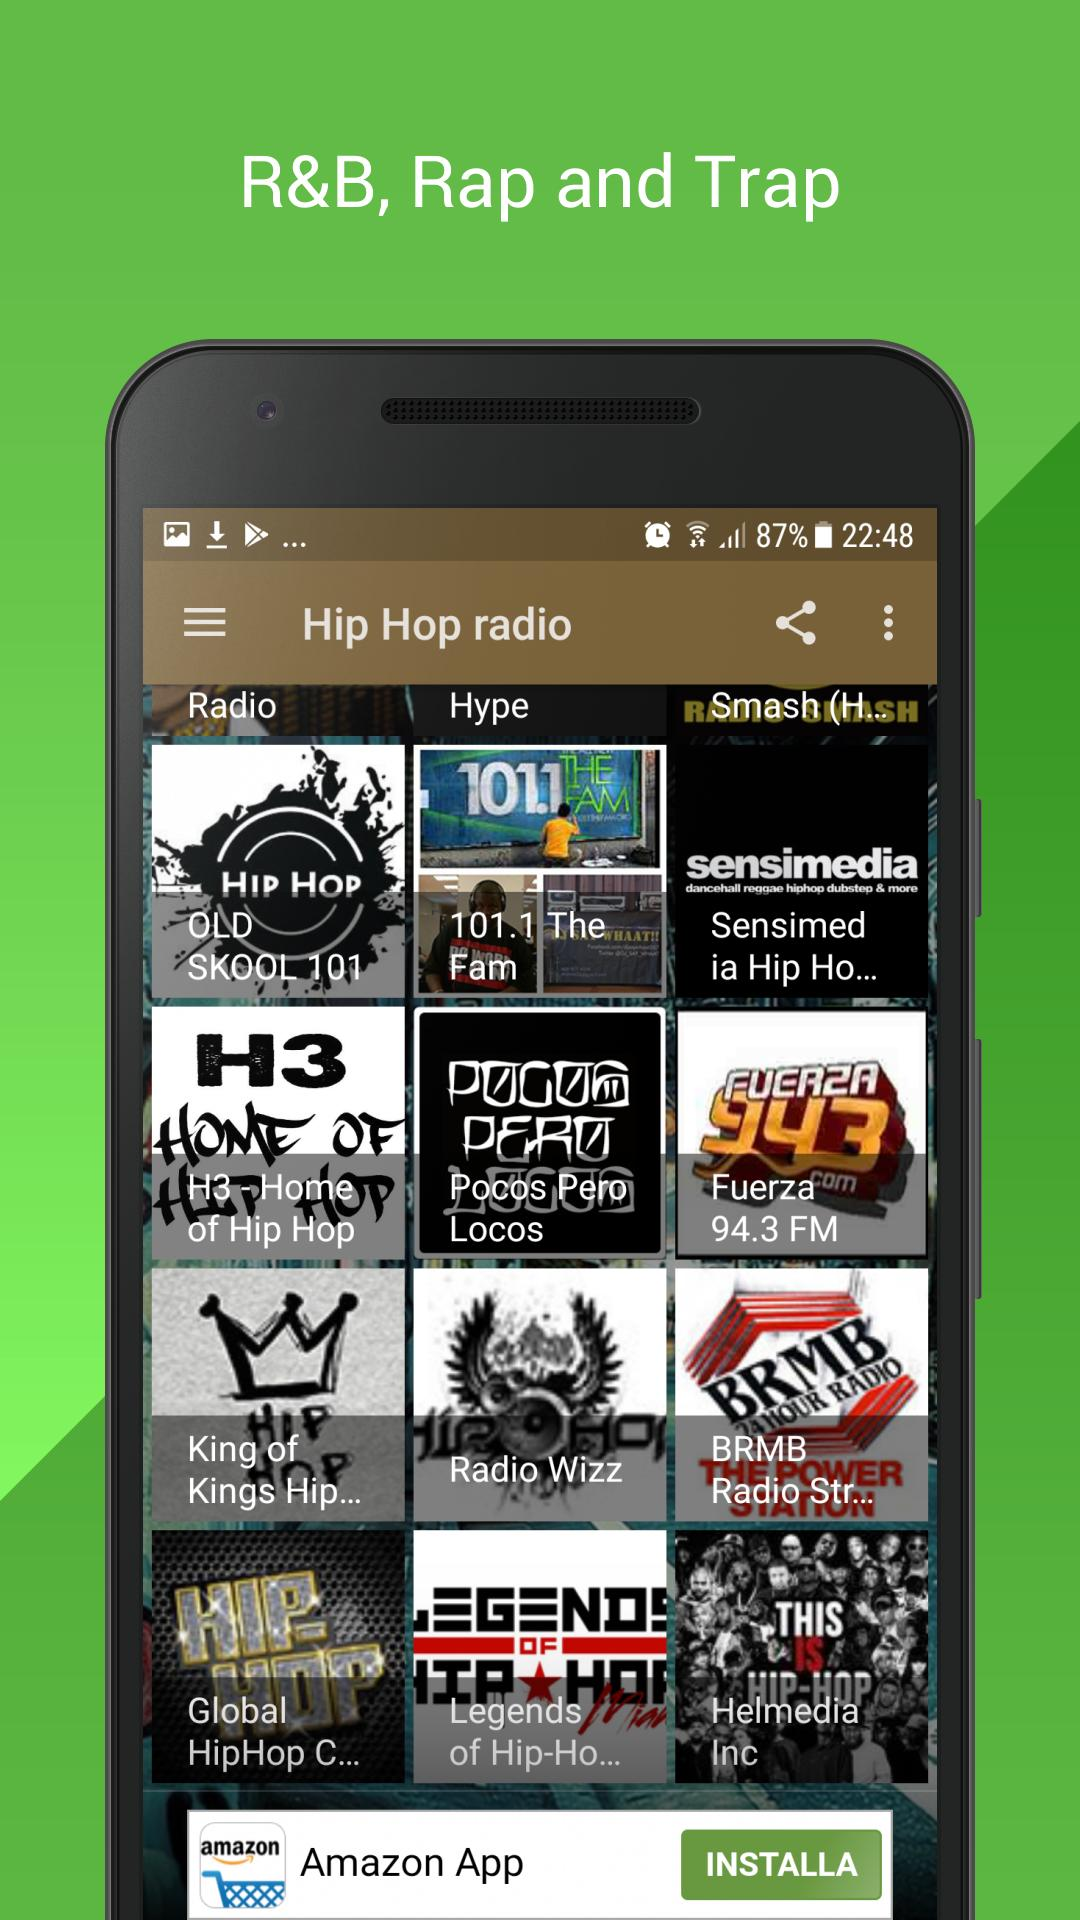 HIP HOP R&B RAP TRAP OLD RADIO for Android - APK Download